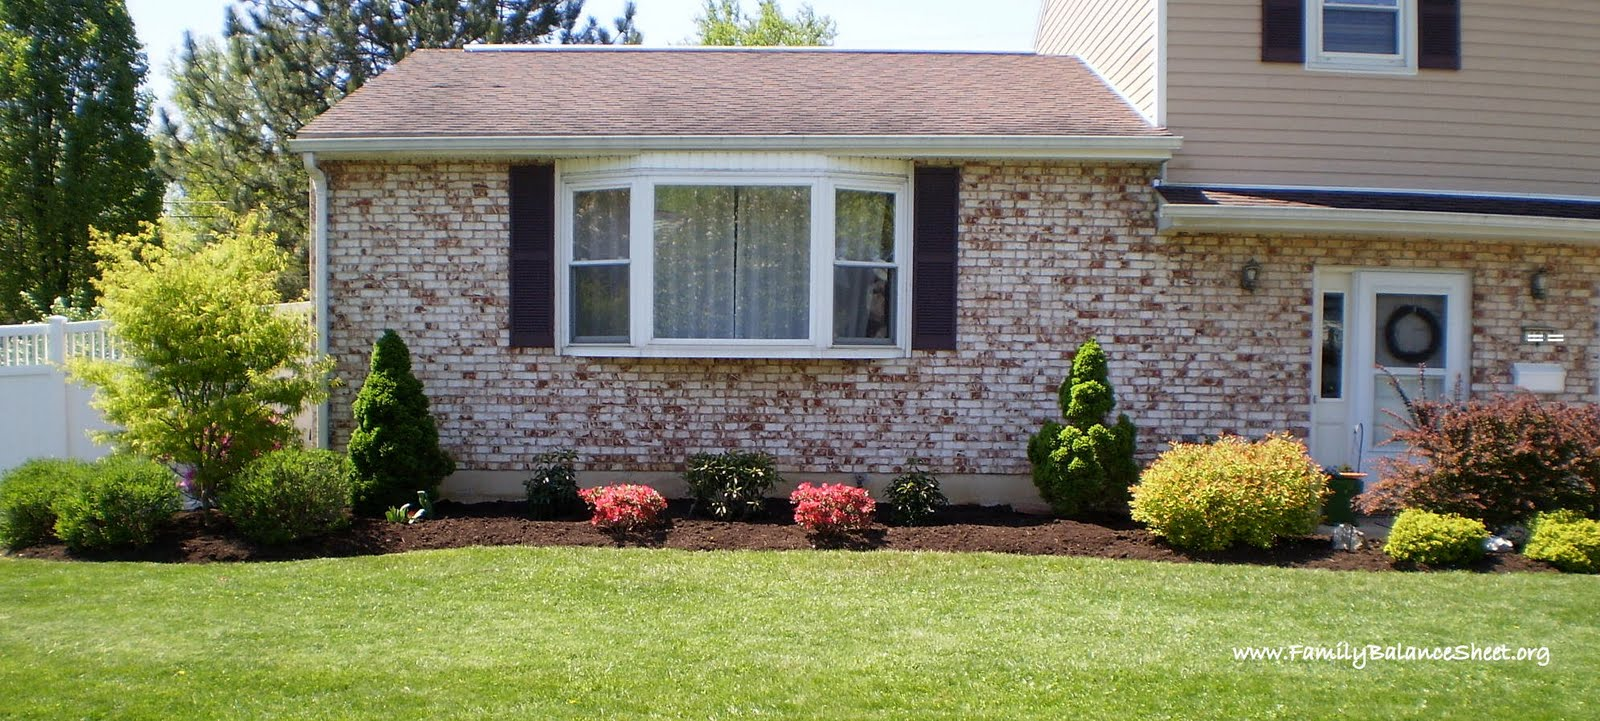 15 tips to help you design your front yard u0026 save money too